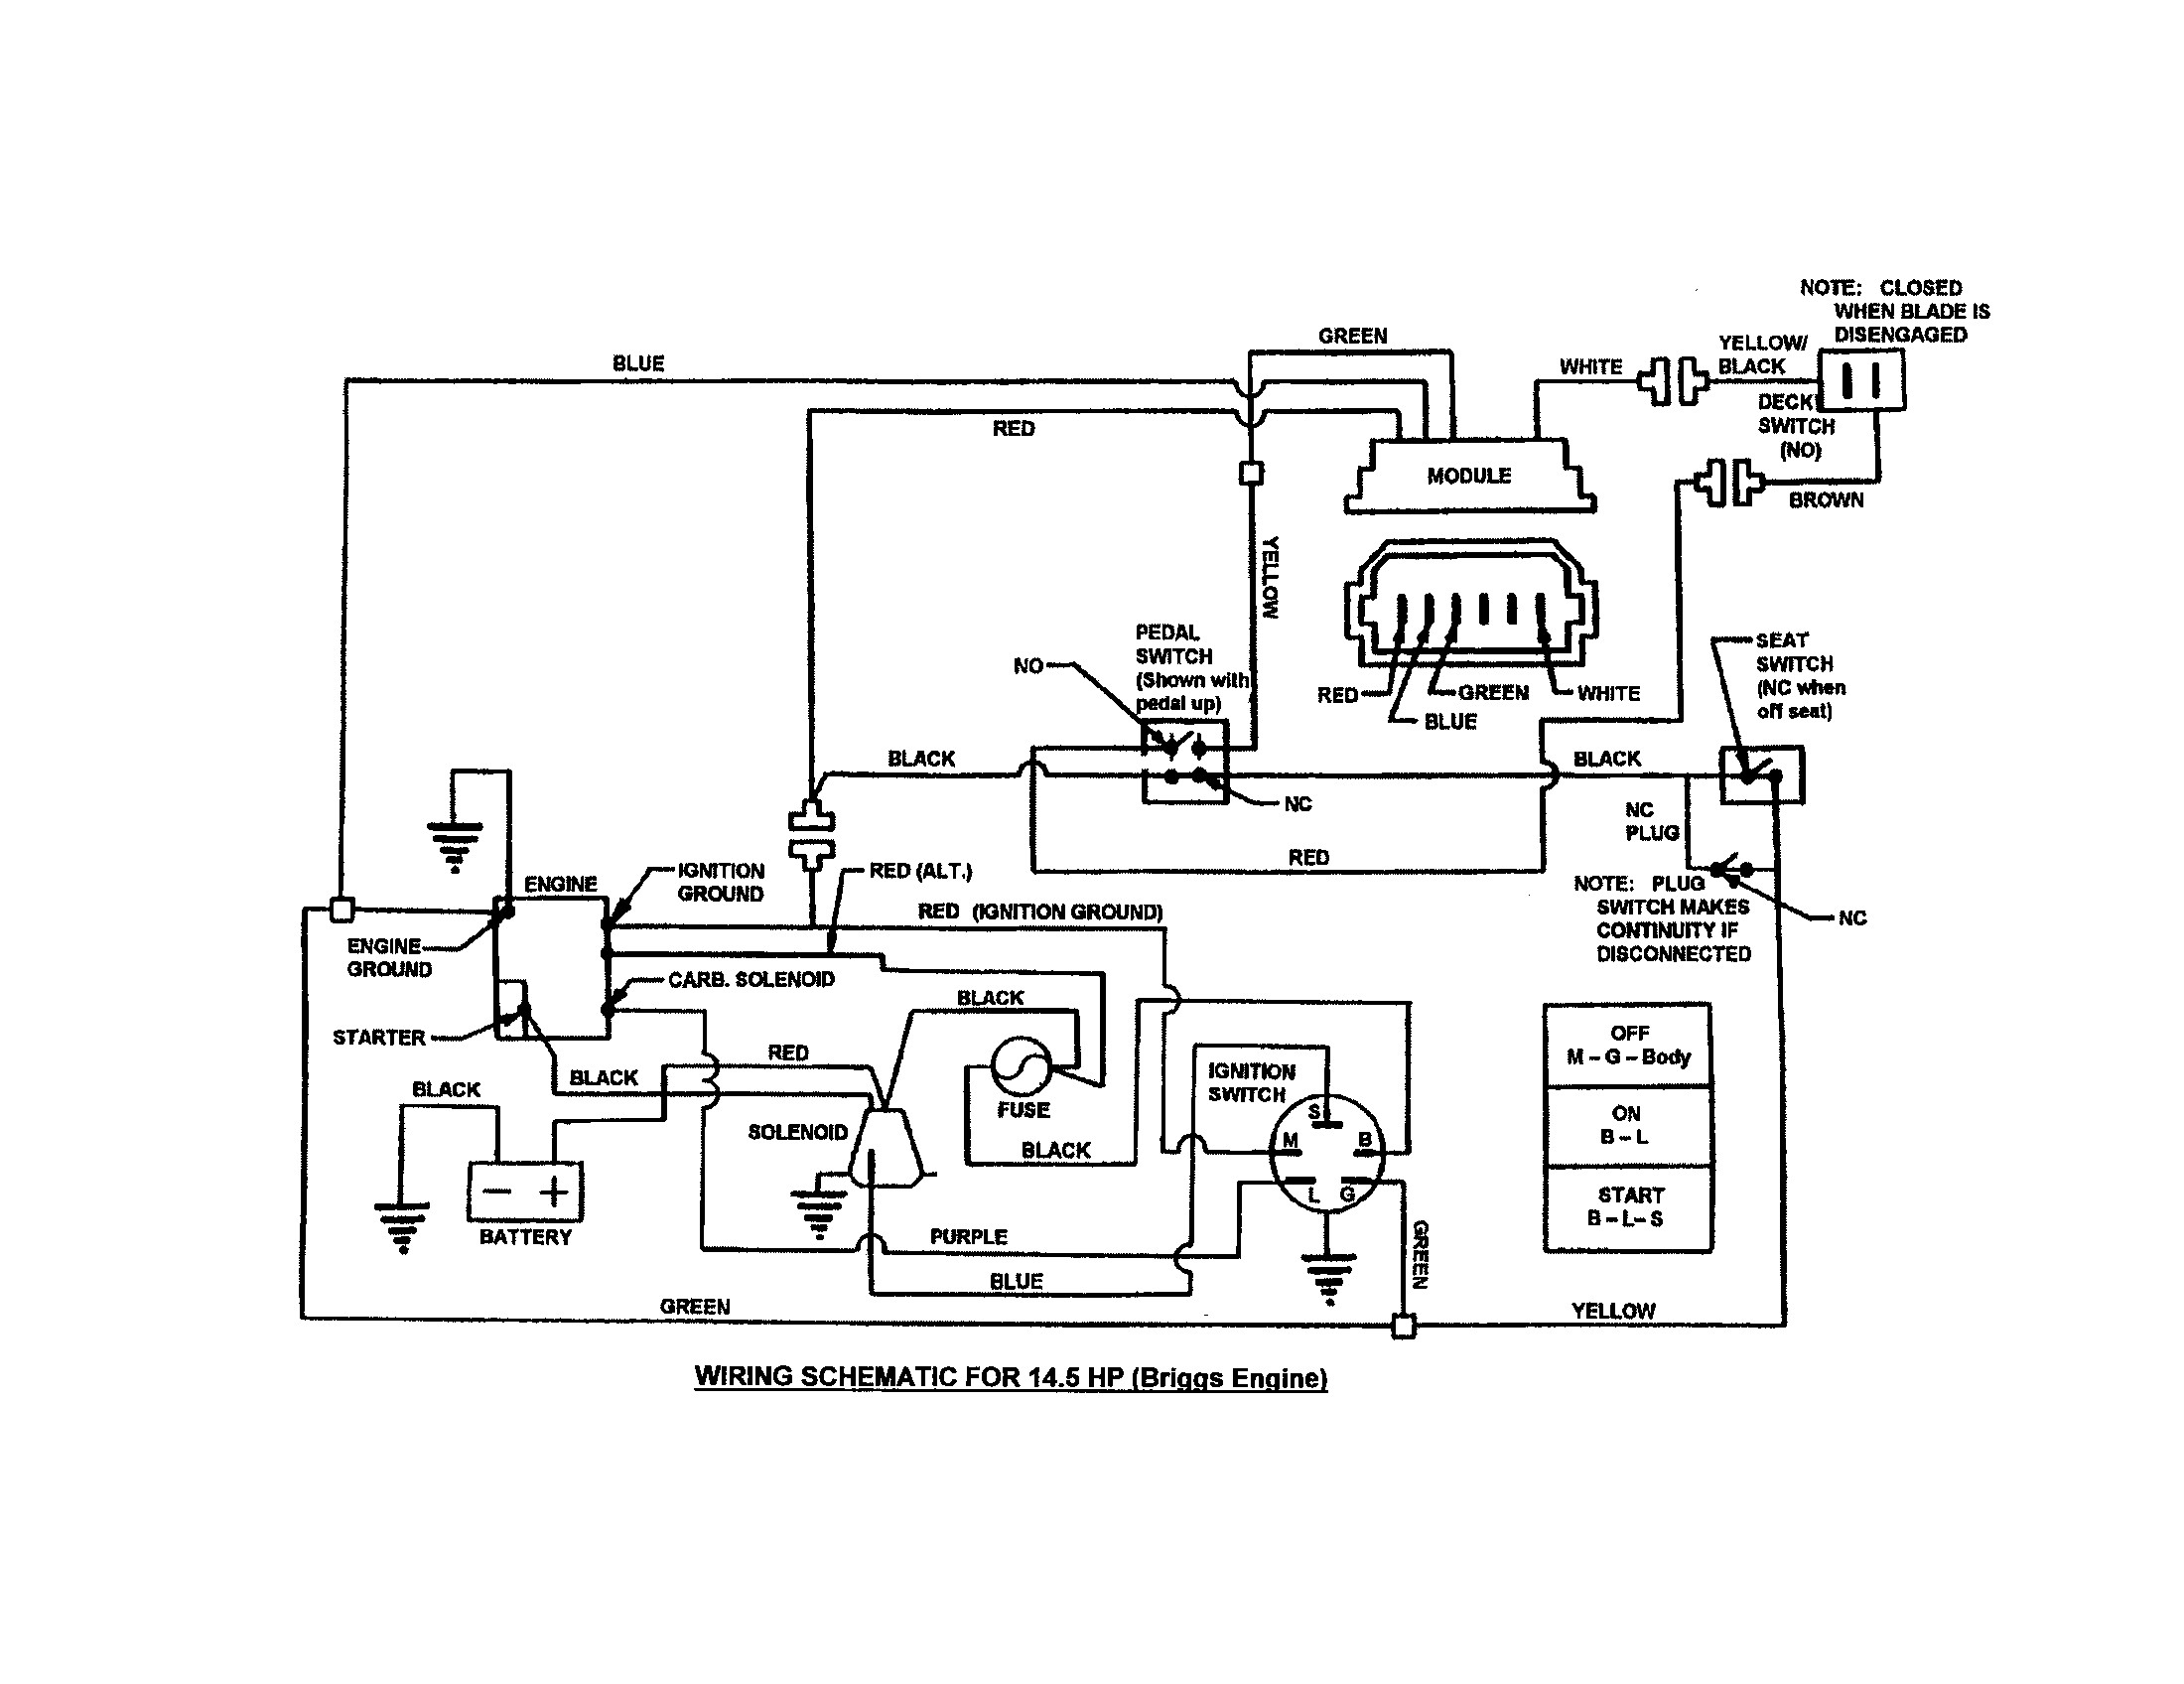 Wiring Diagram For Craftsman 22 Hp Lawn Mower